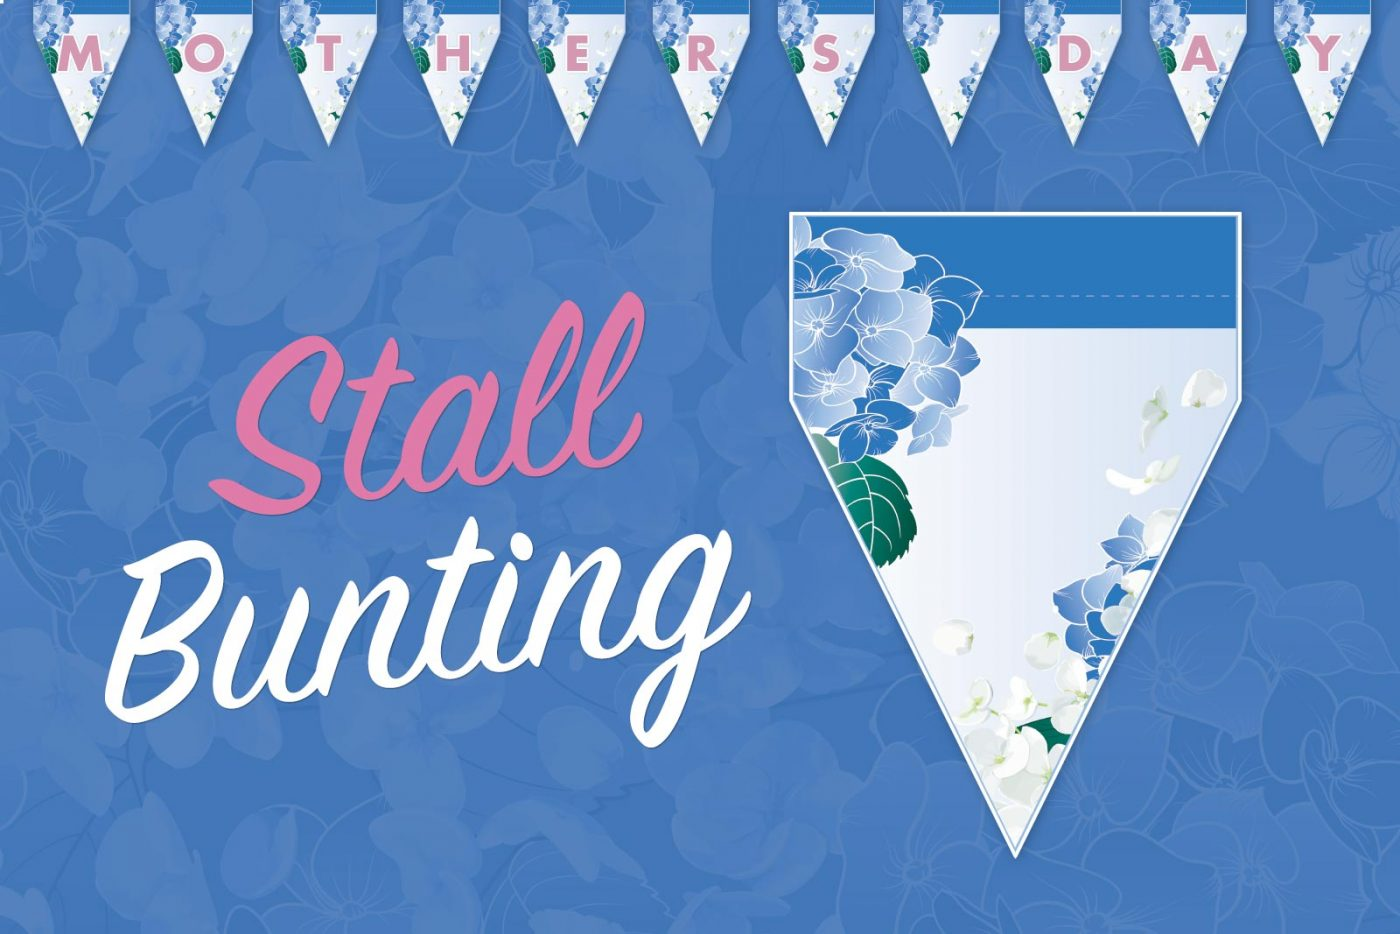 Mother's Day Stall Bunting